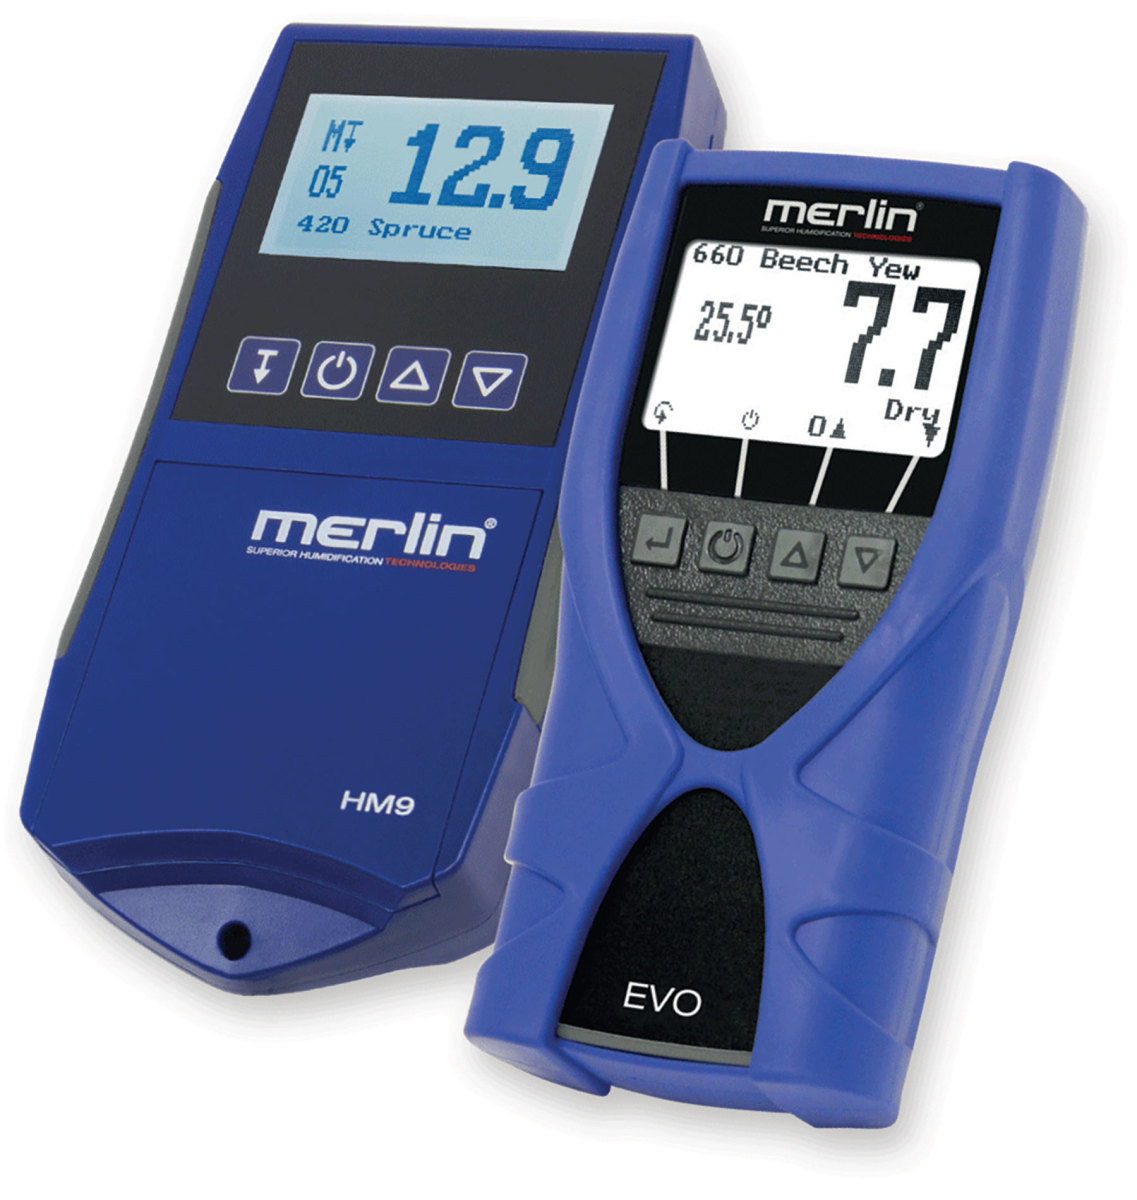 Merlin's HM9 (left) and EVO pinless moisture meters.